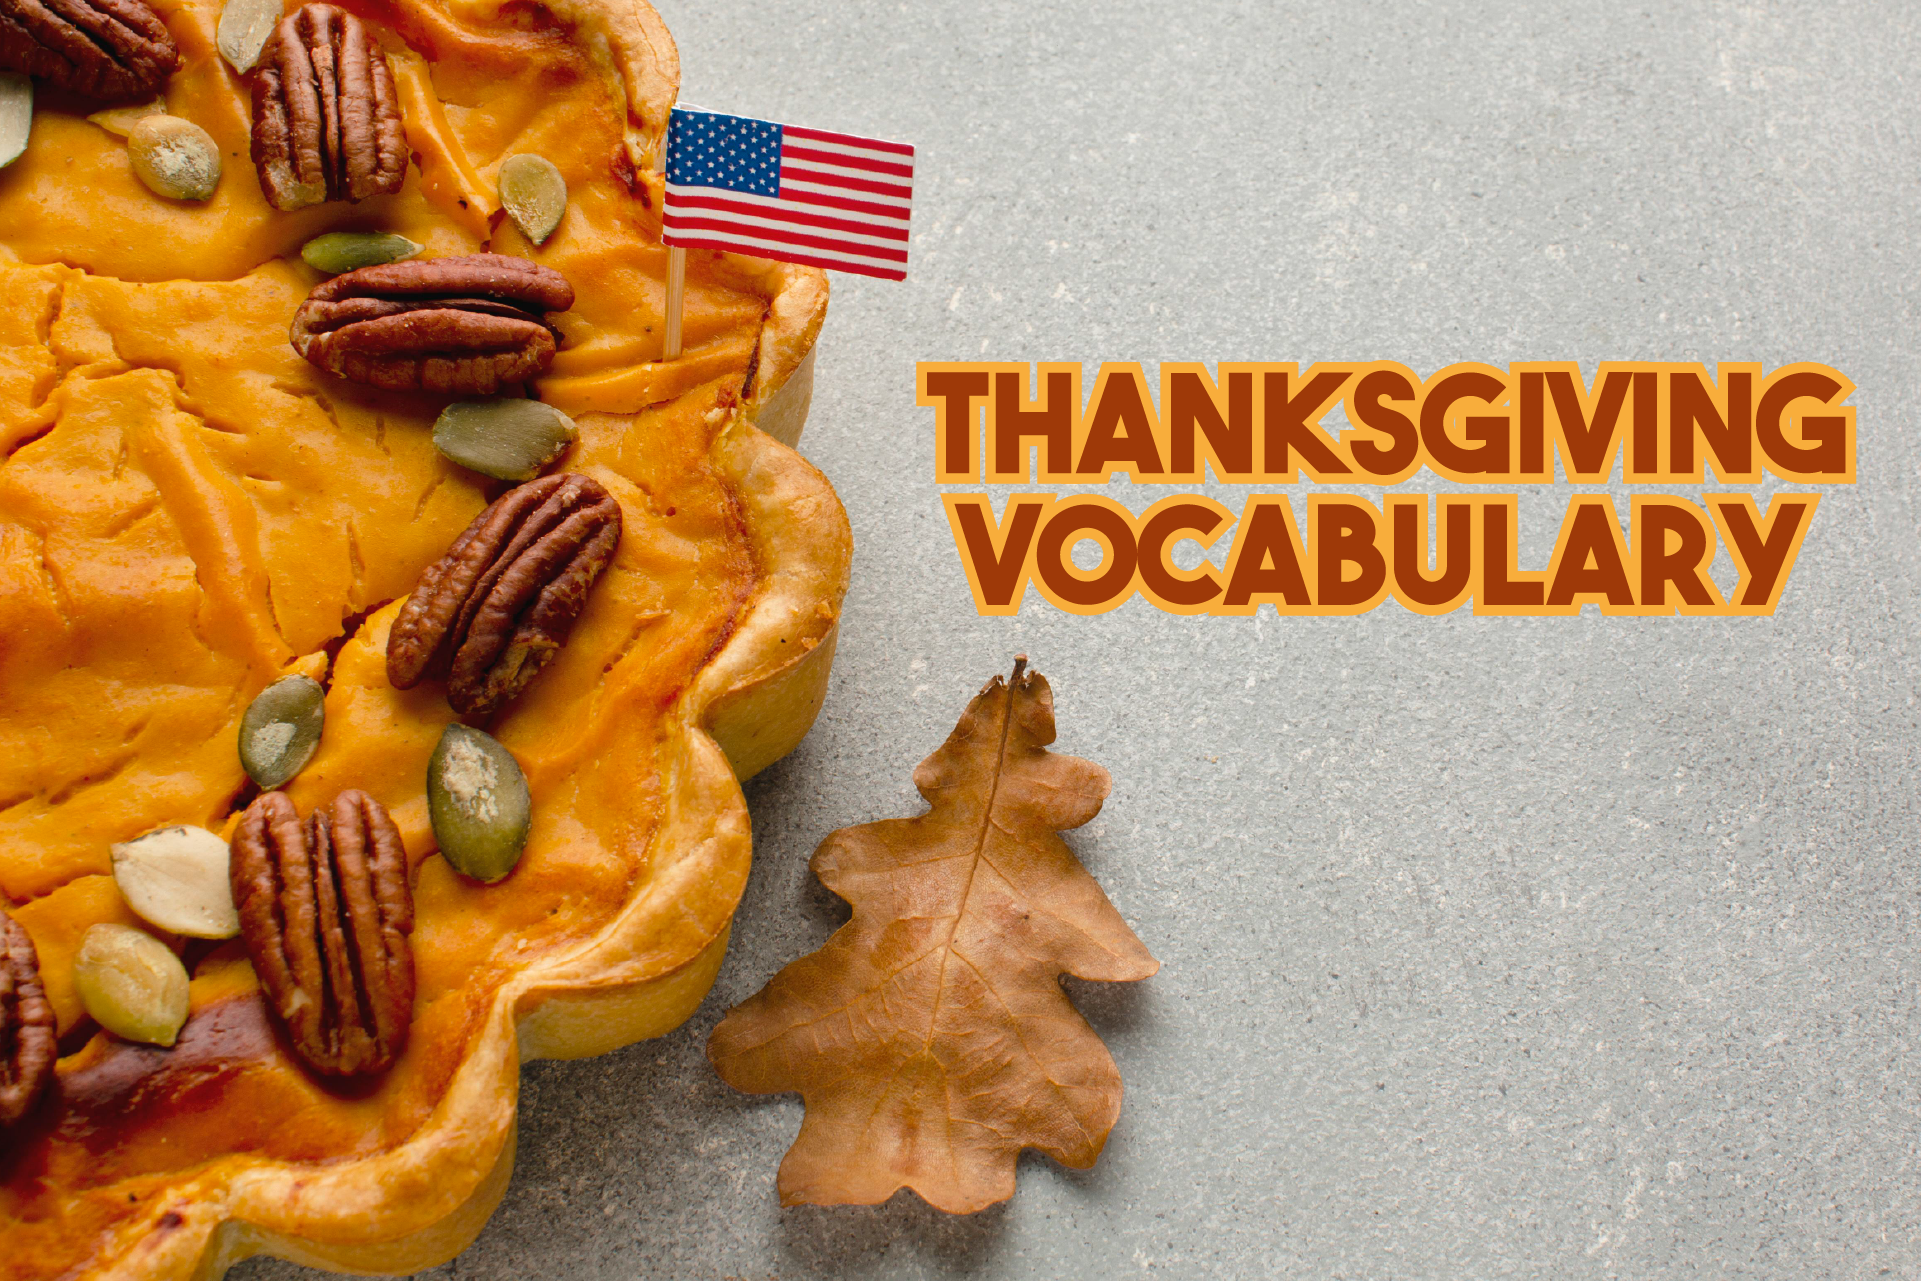 Vocabulario para la celebración de Thanksgiving